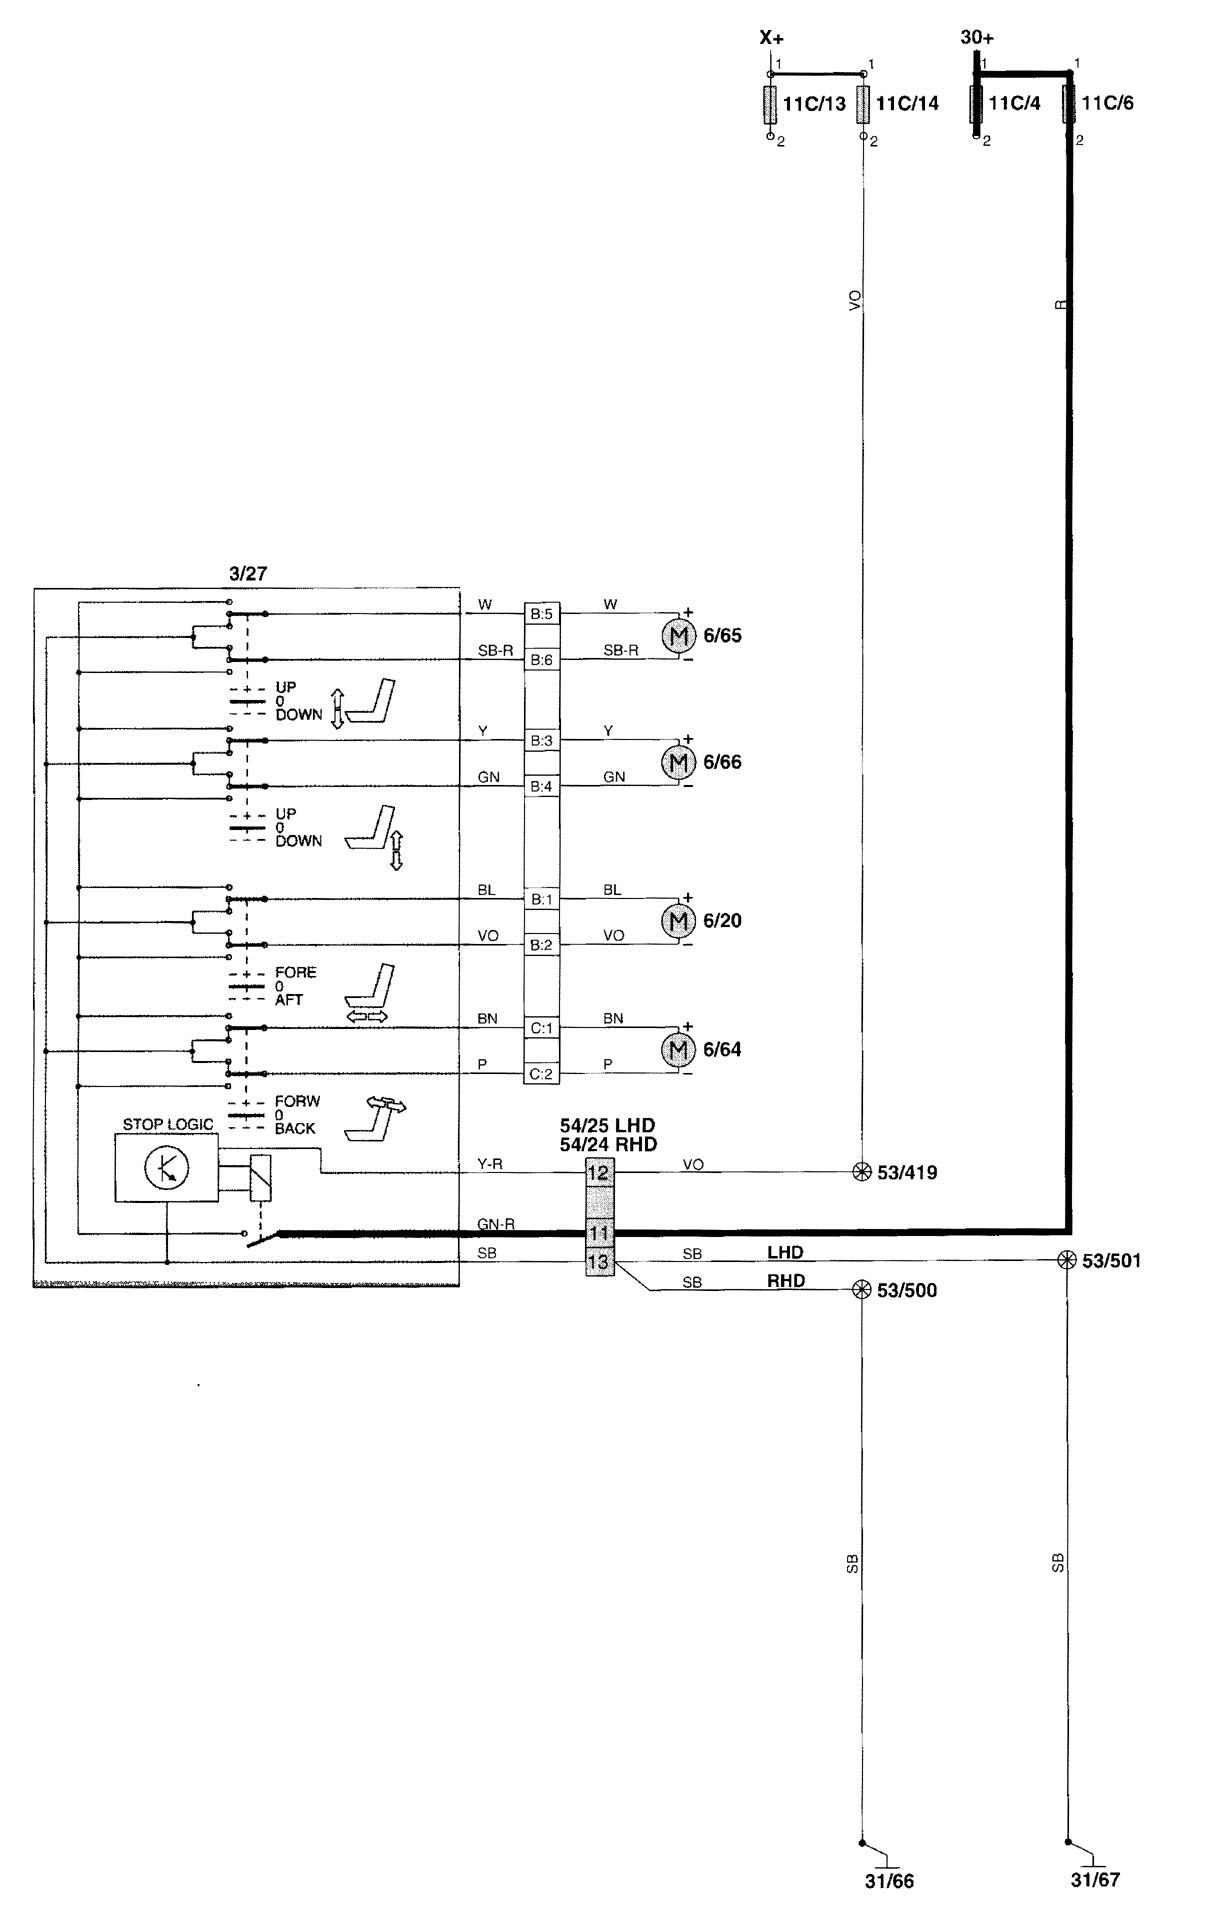 2001 volvo wiring diagrams volvo v70  2001 2002  wiring diagrams power seat  volvo v70  2001 2002  wiring